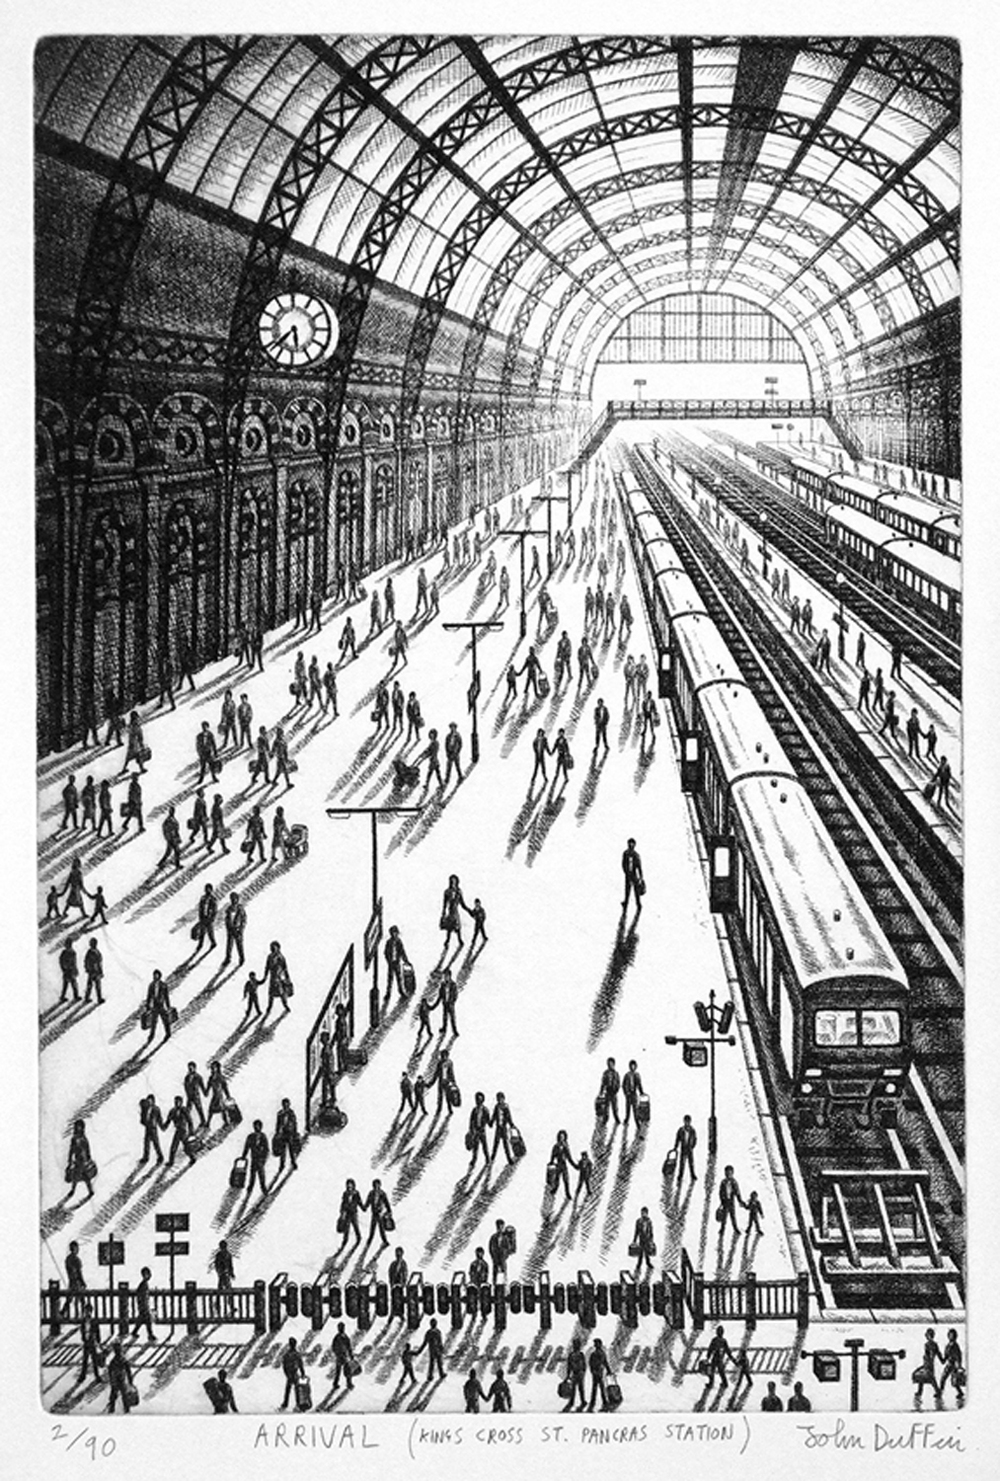 Arrival (King's Cross St Pancras) etching